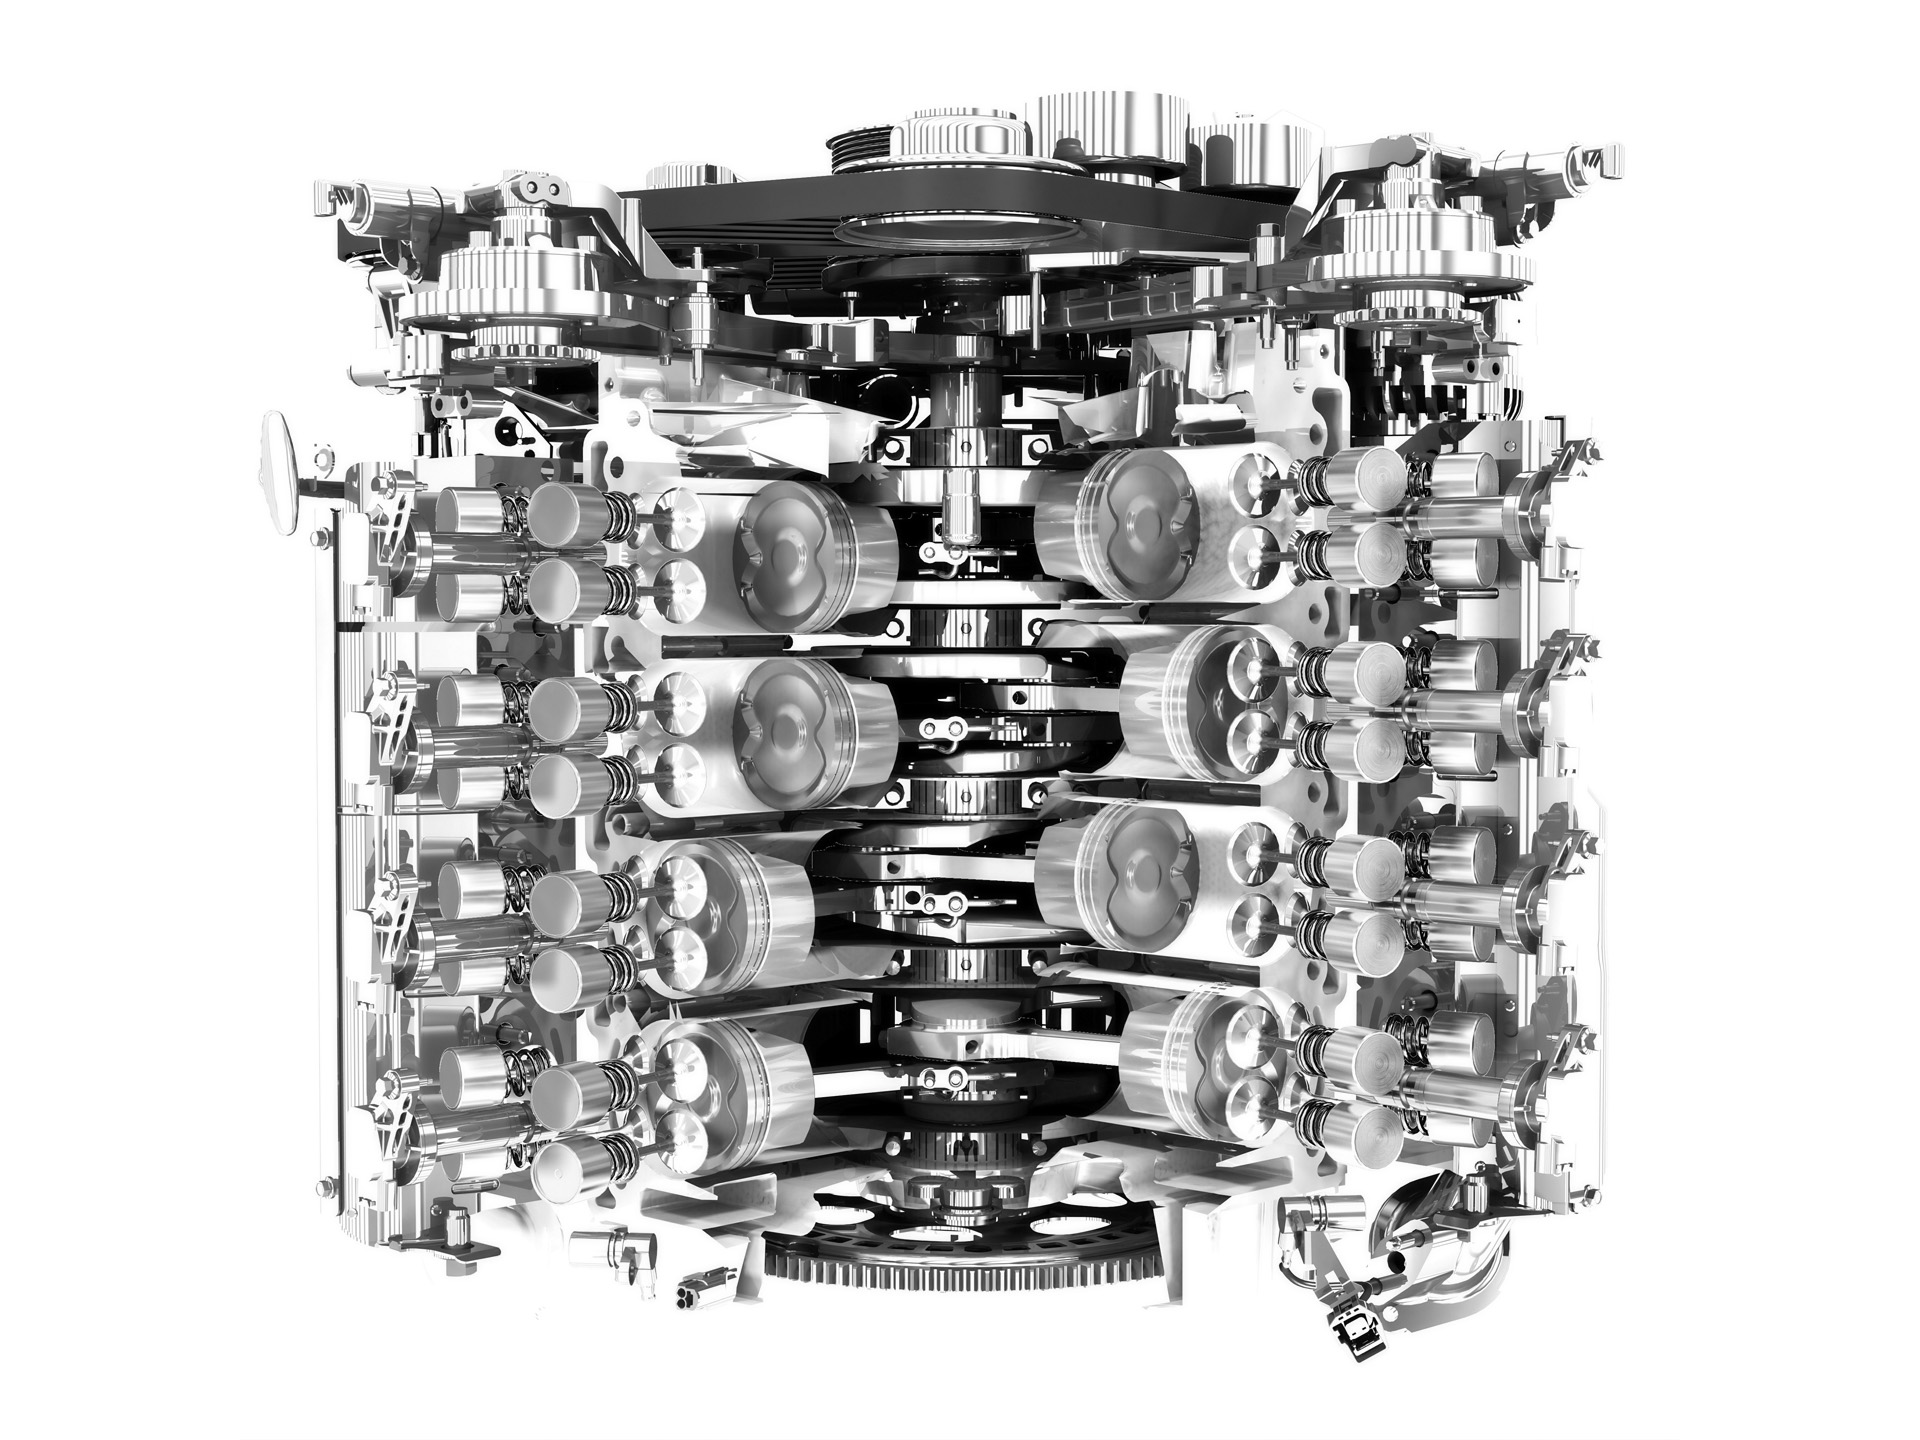 Sample P1175 Engine